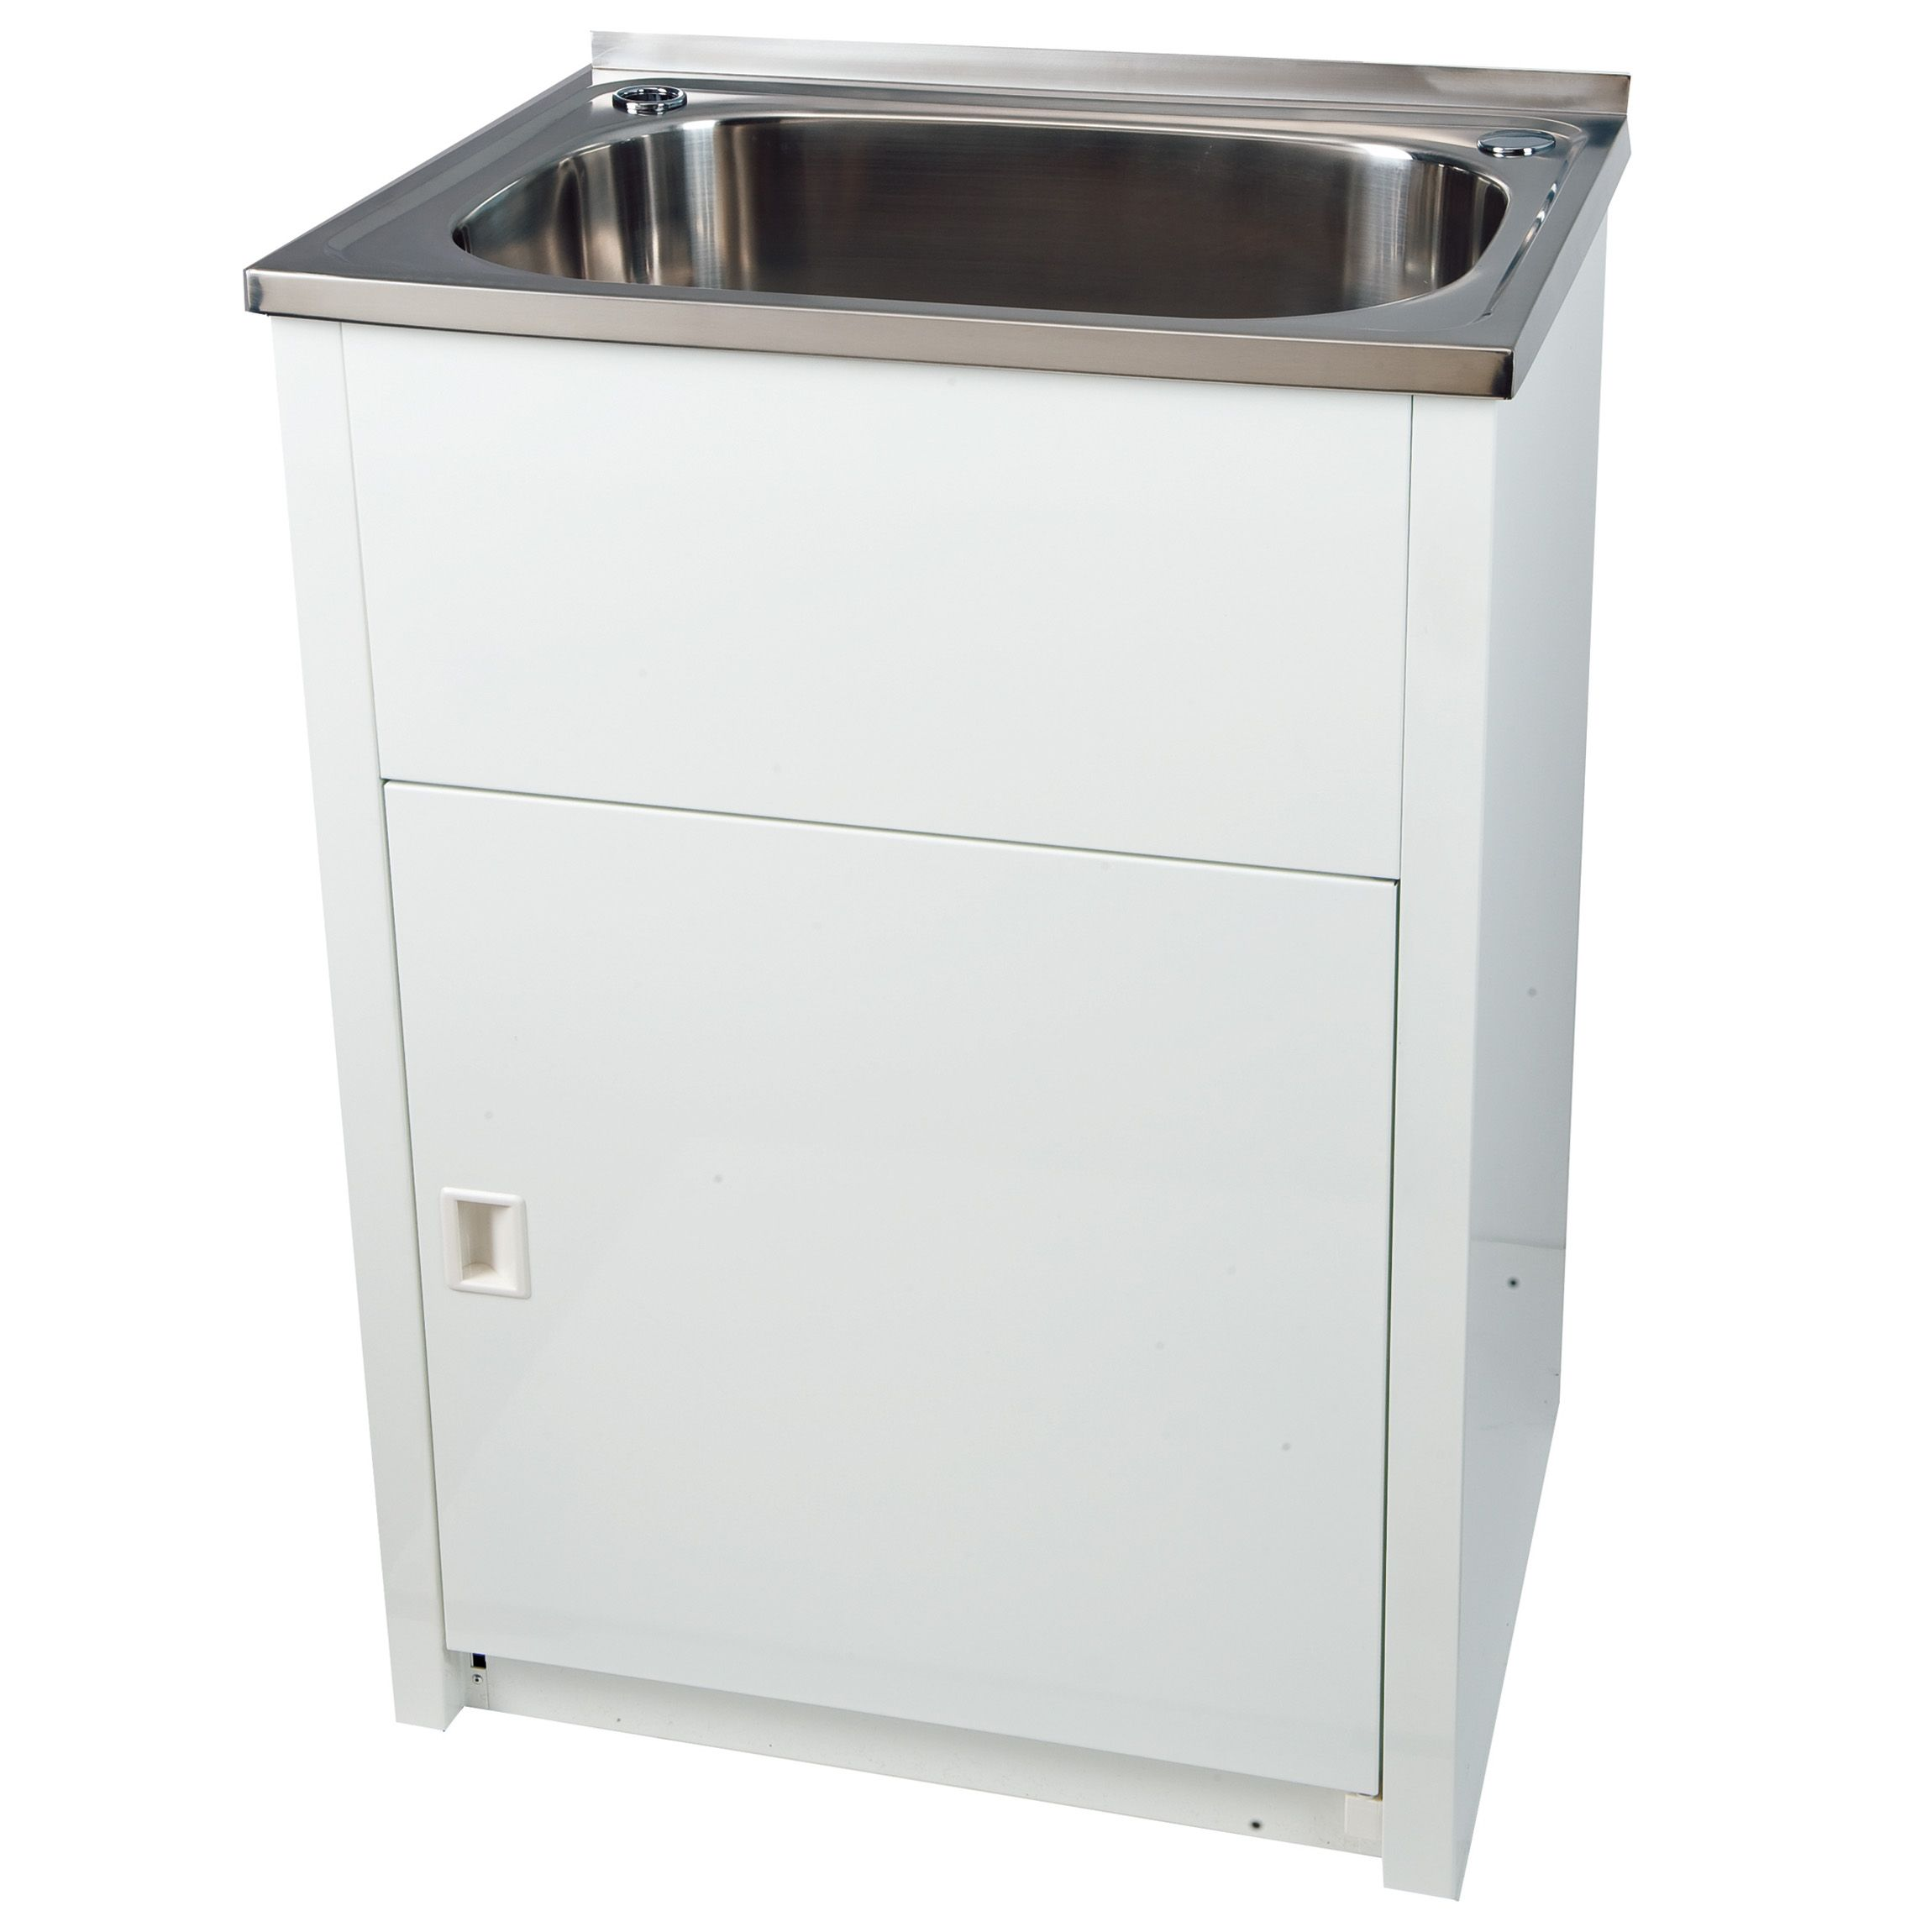 Floor Waste Bunnings Everhard 45l Laundry Trough And Cabinet 71076 Bunnings Warehouse